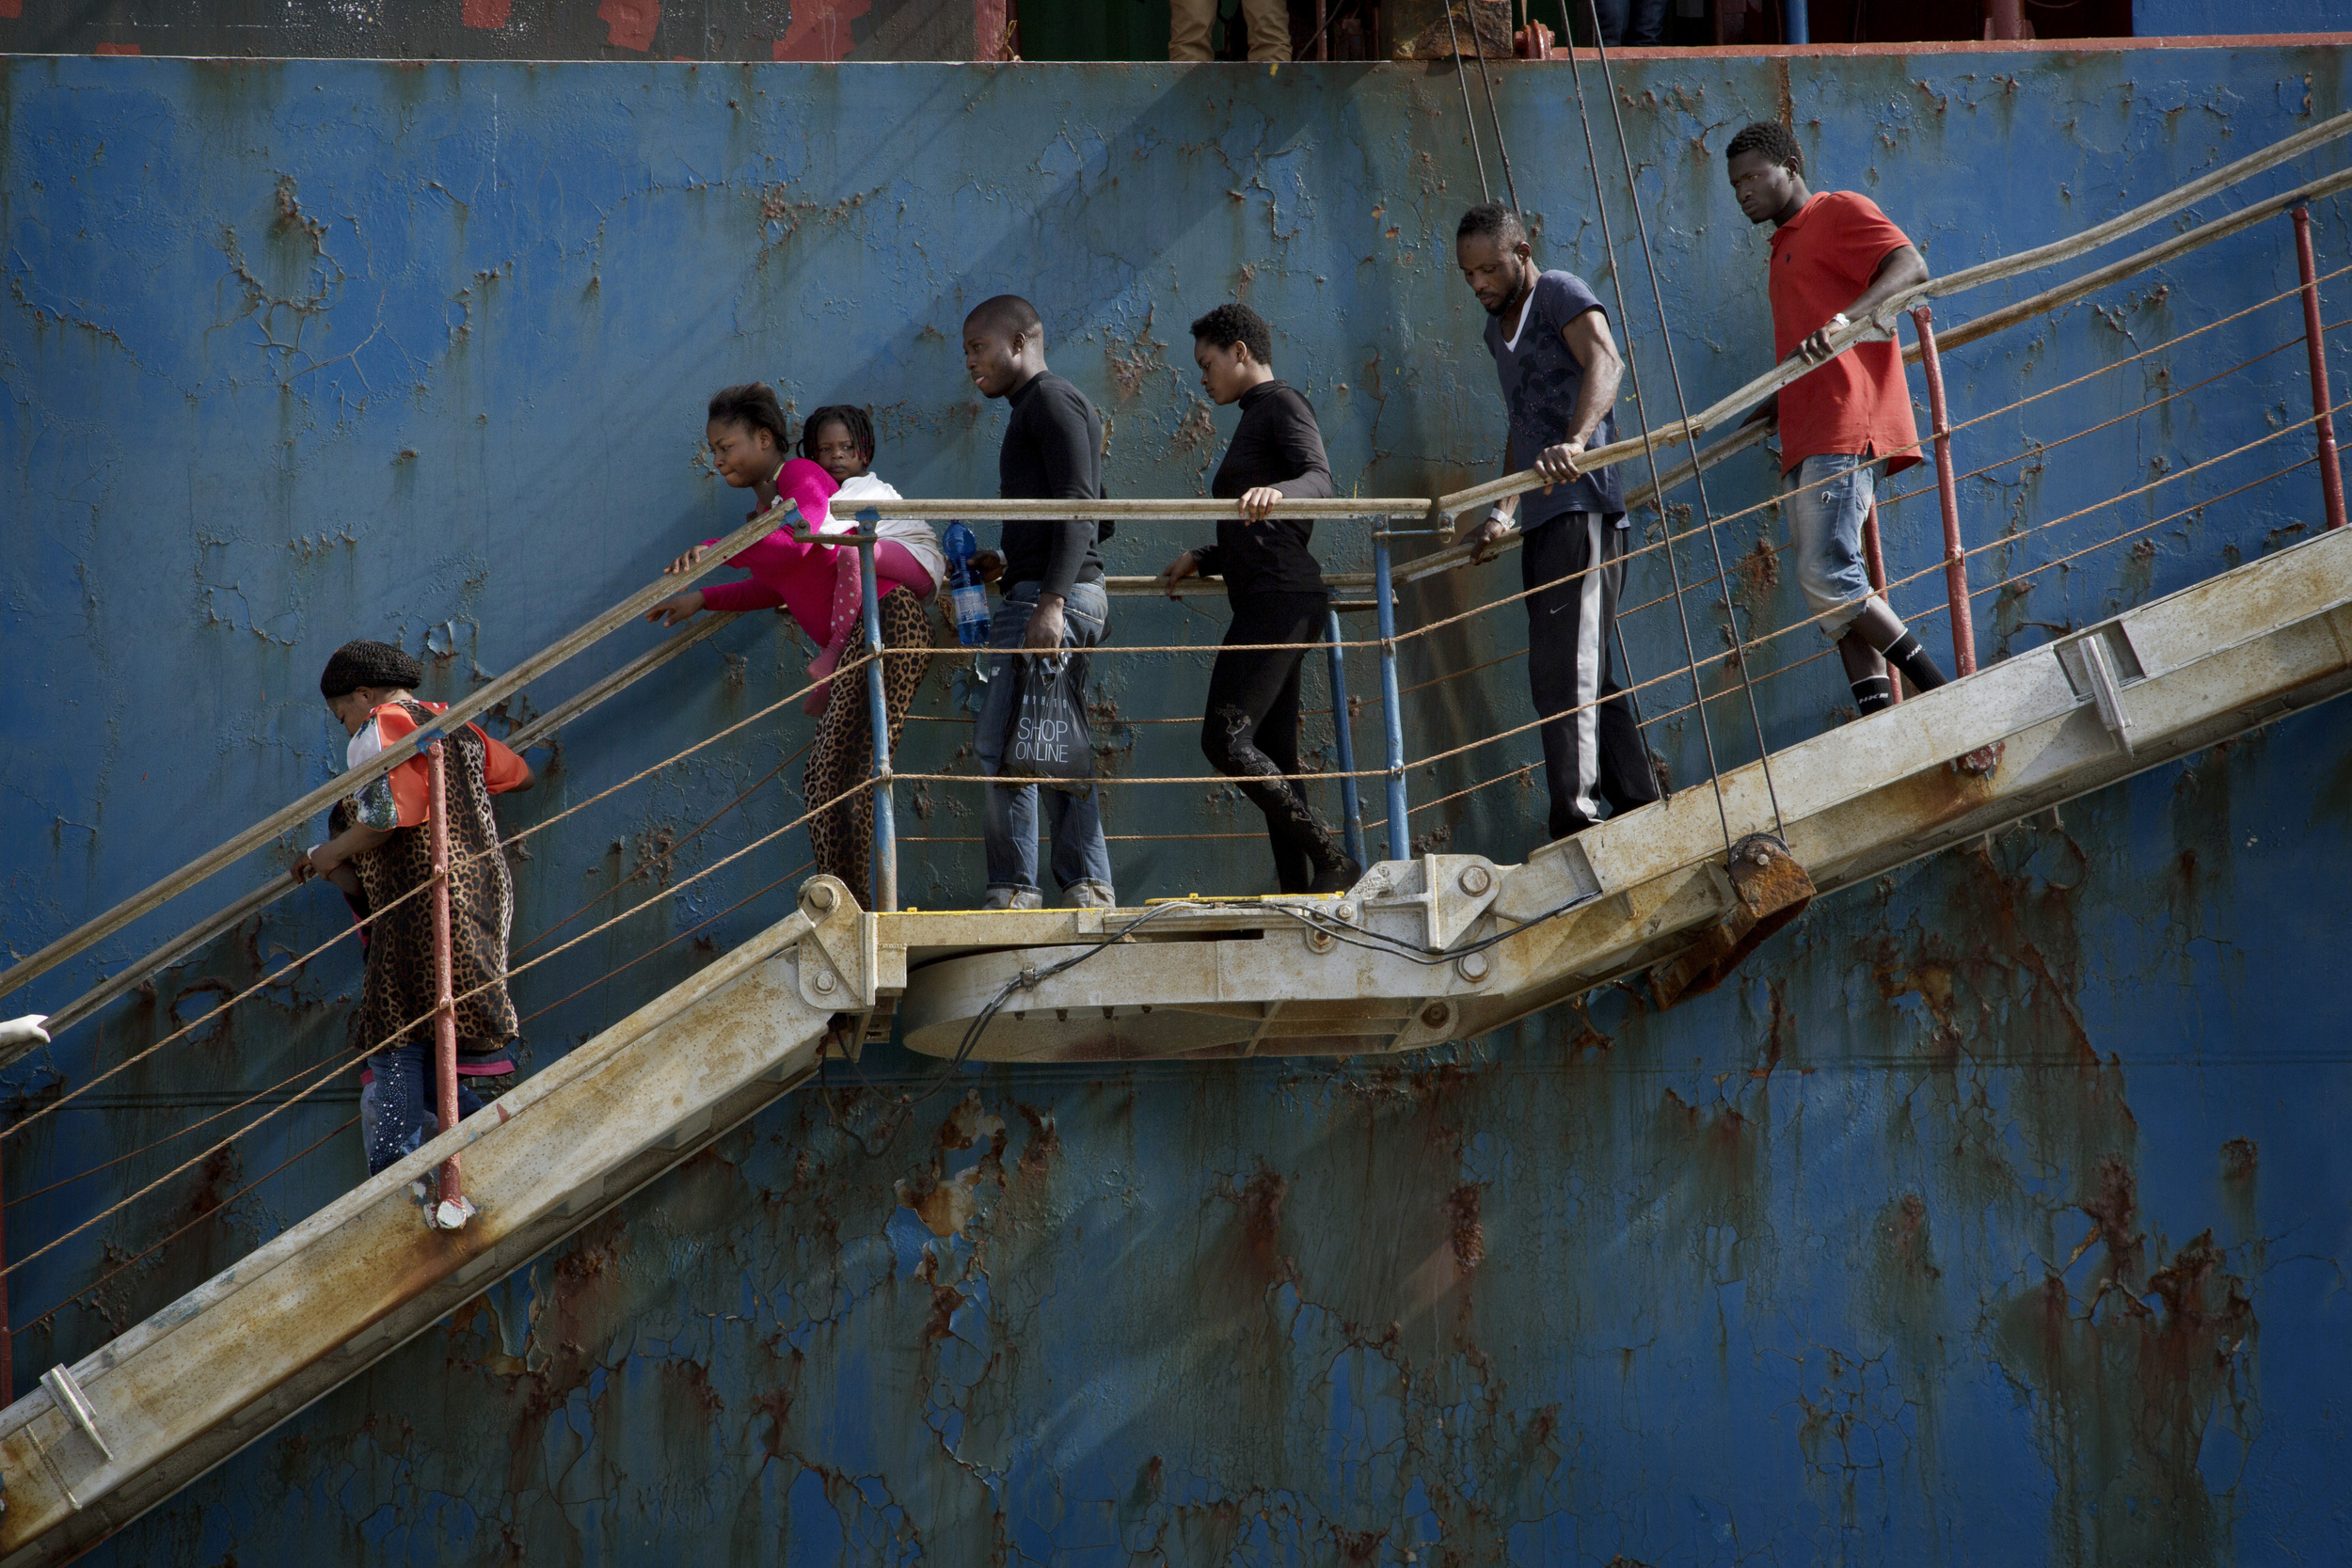 Rescued migrants disembark from the cargo ship that rescued them.